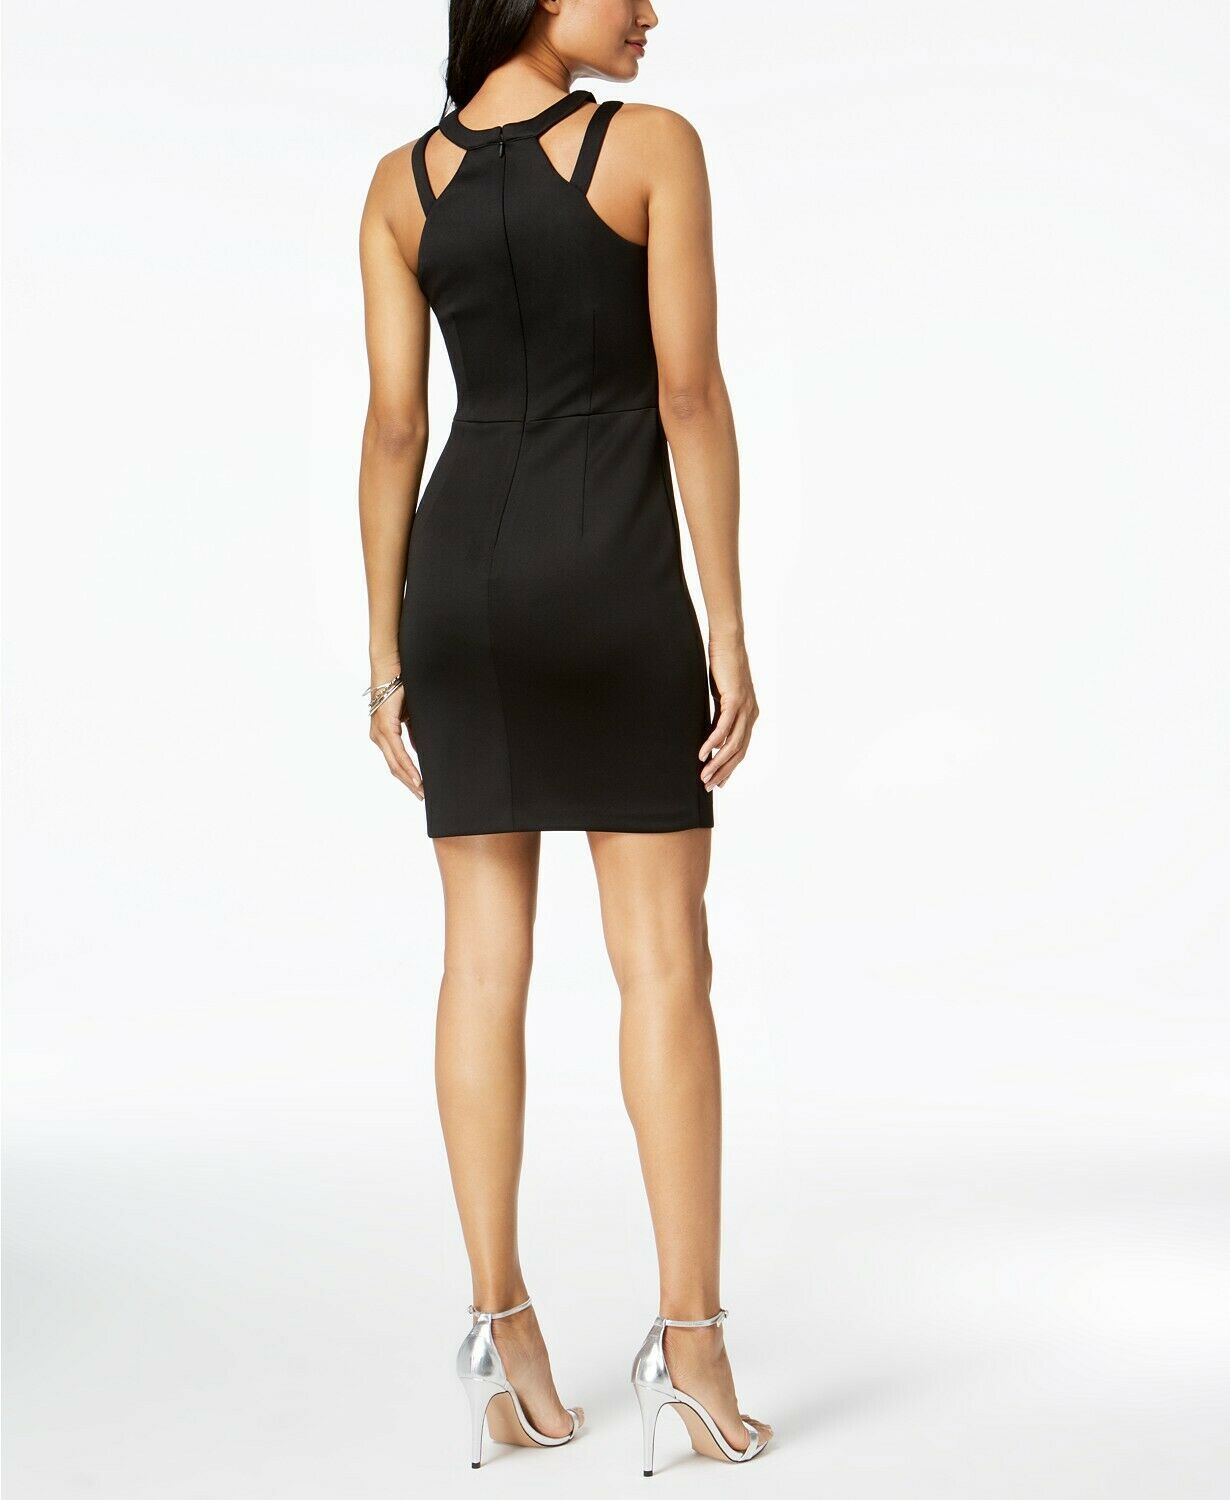 GUESS Caged Scuba Bodycon Dress Black Size 0